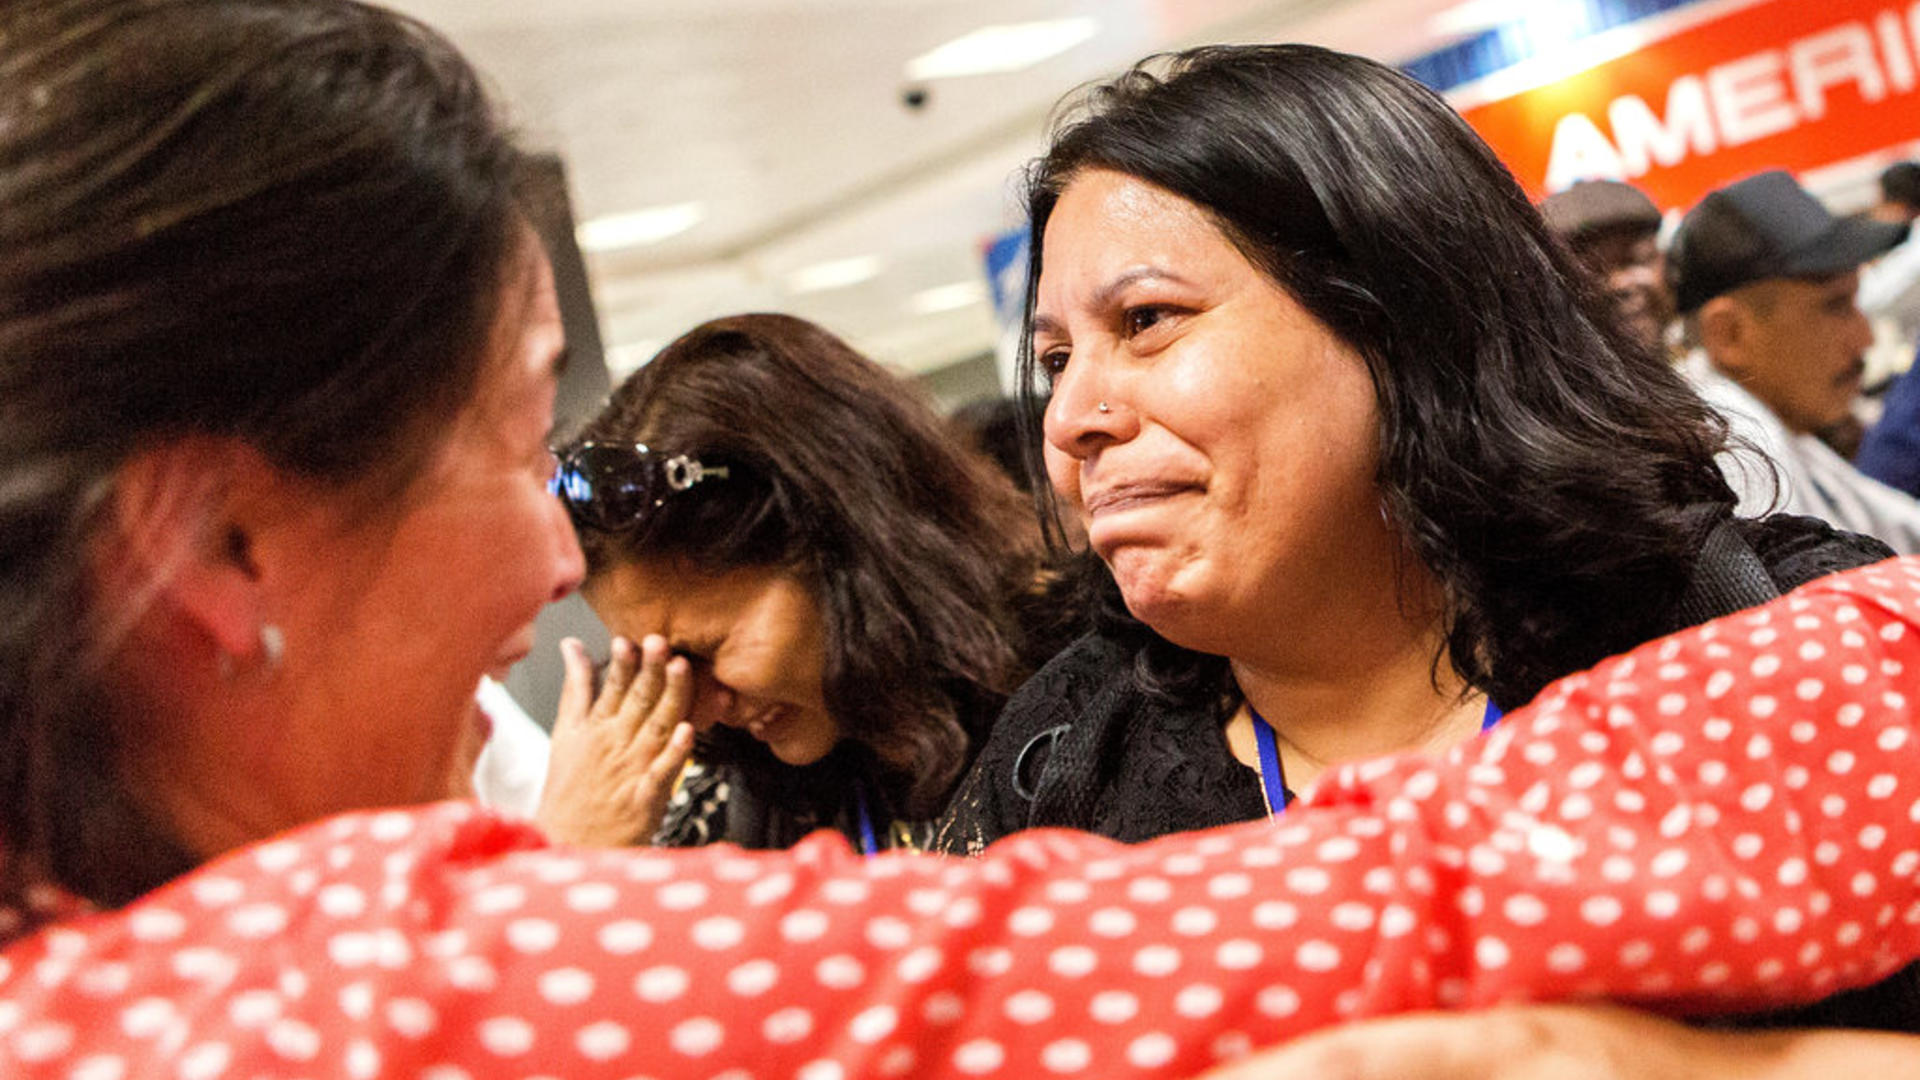 IRC staffer Kristin welcomes Shaista Sadiq at Dulles airport with a hug